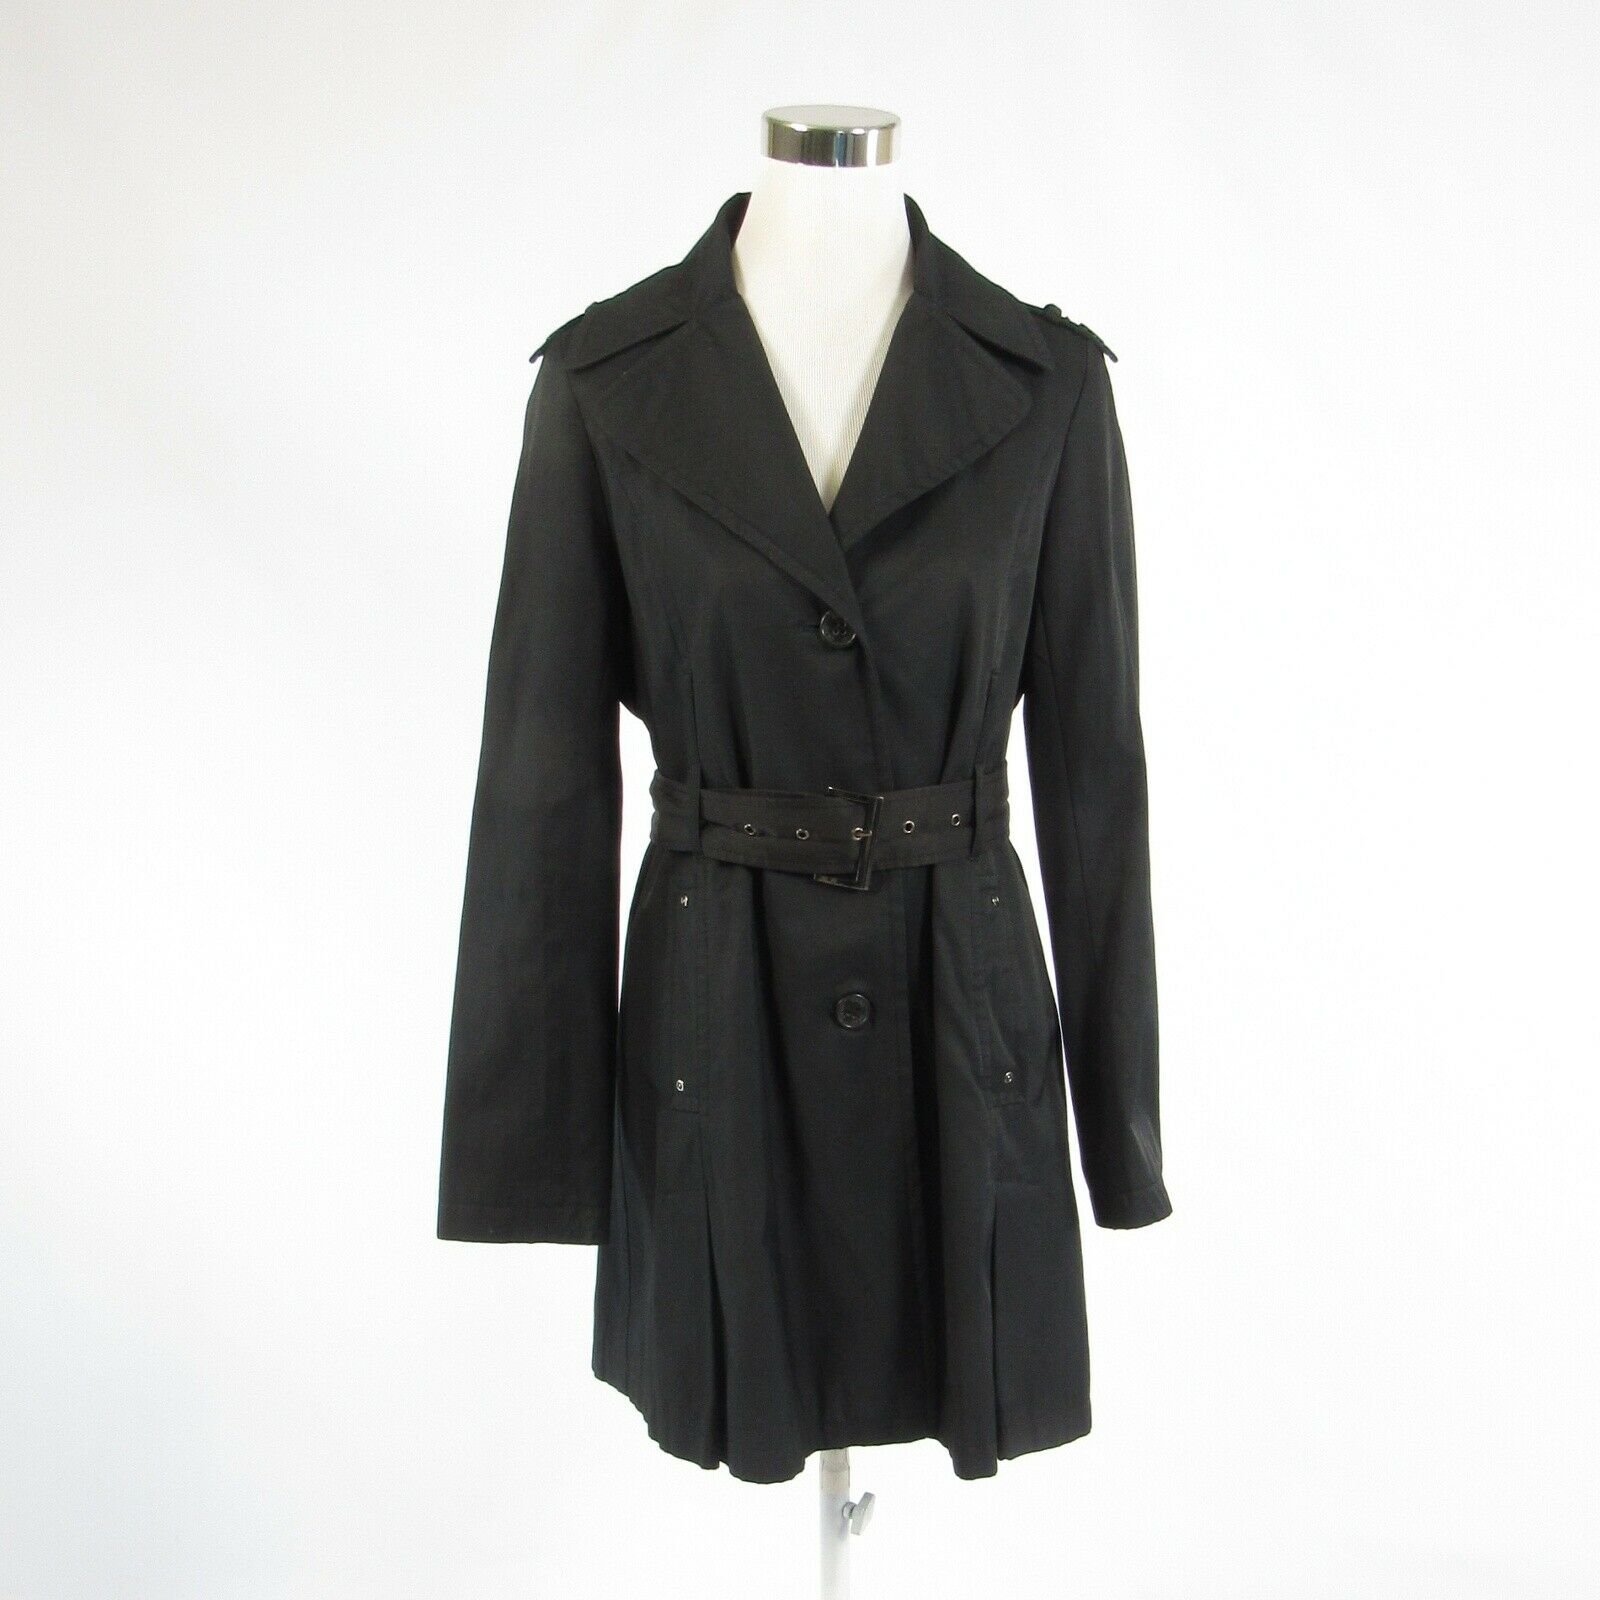 Charcoal gray cotton blend DKNY NEW YORK belted waist long sleeve trench coat M-Newish